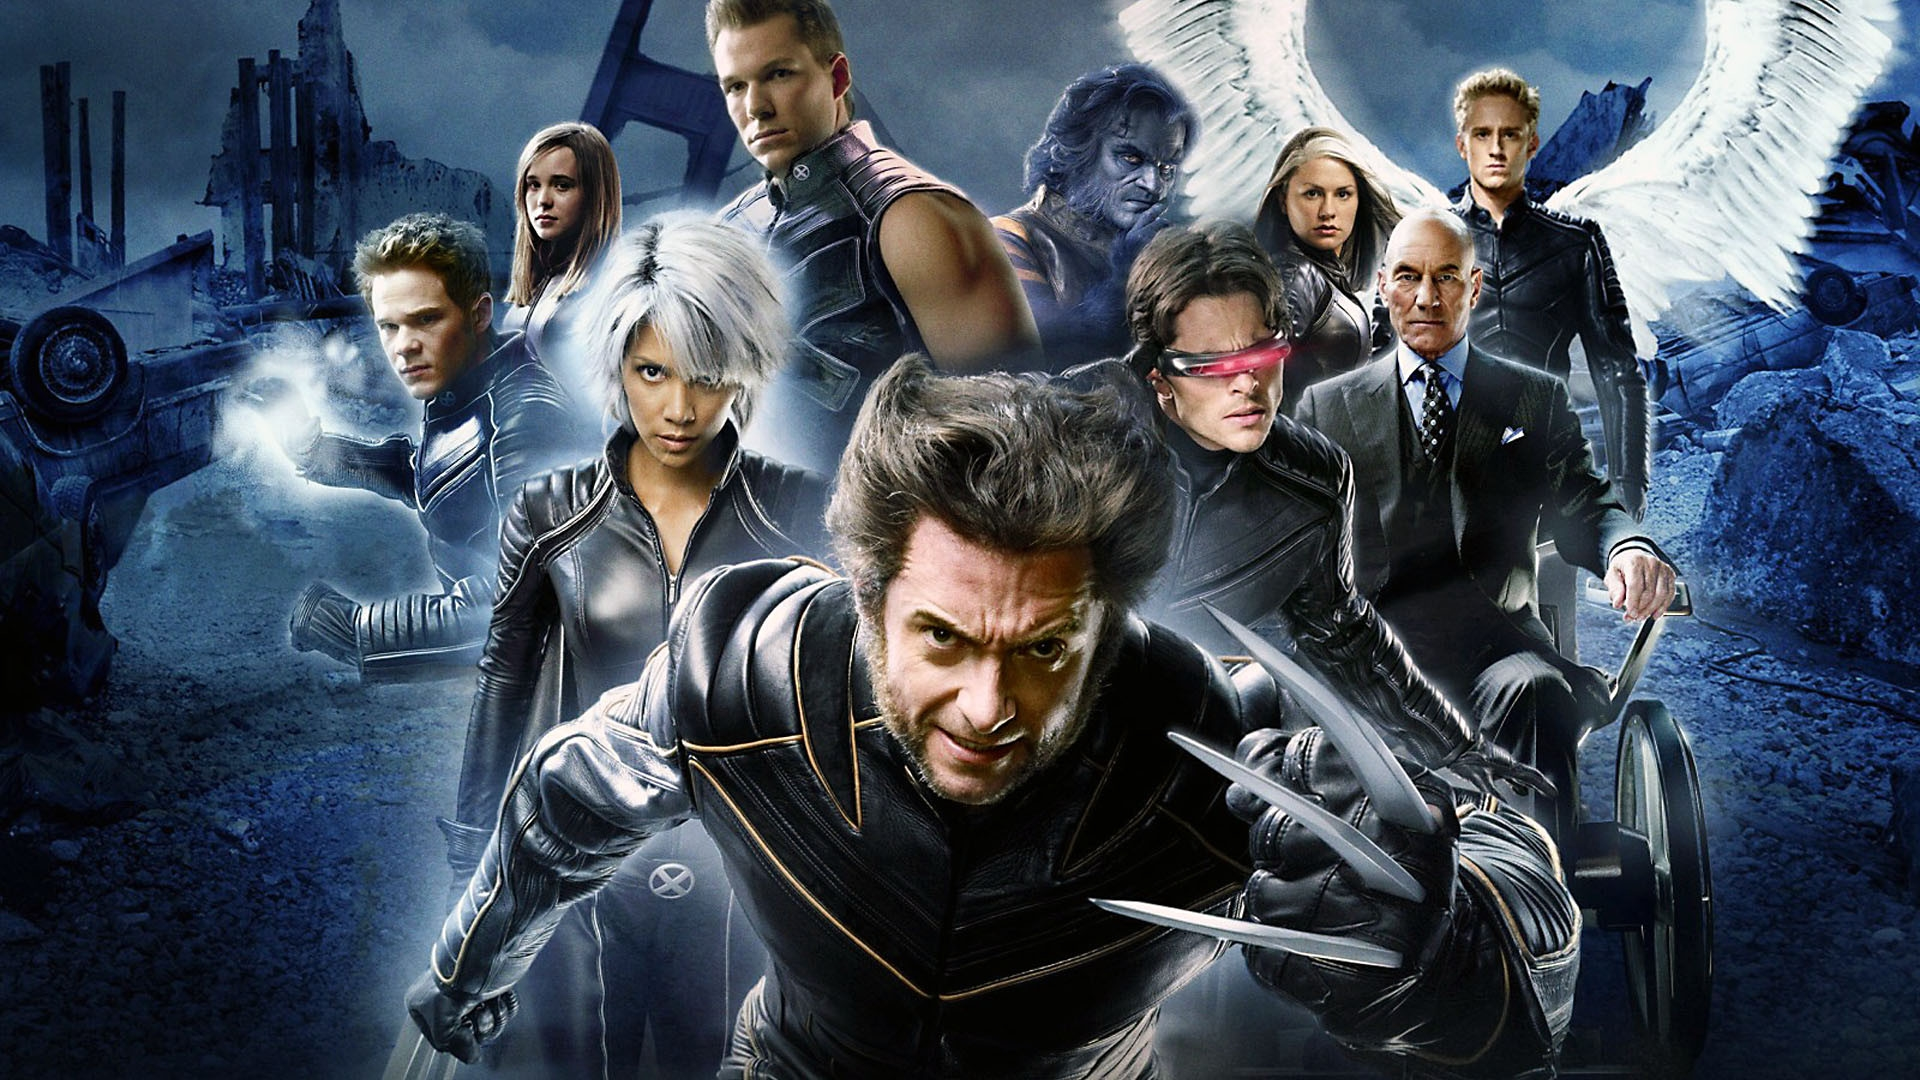 x men the last stand original wallpaper hd